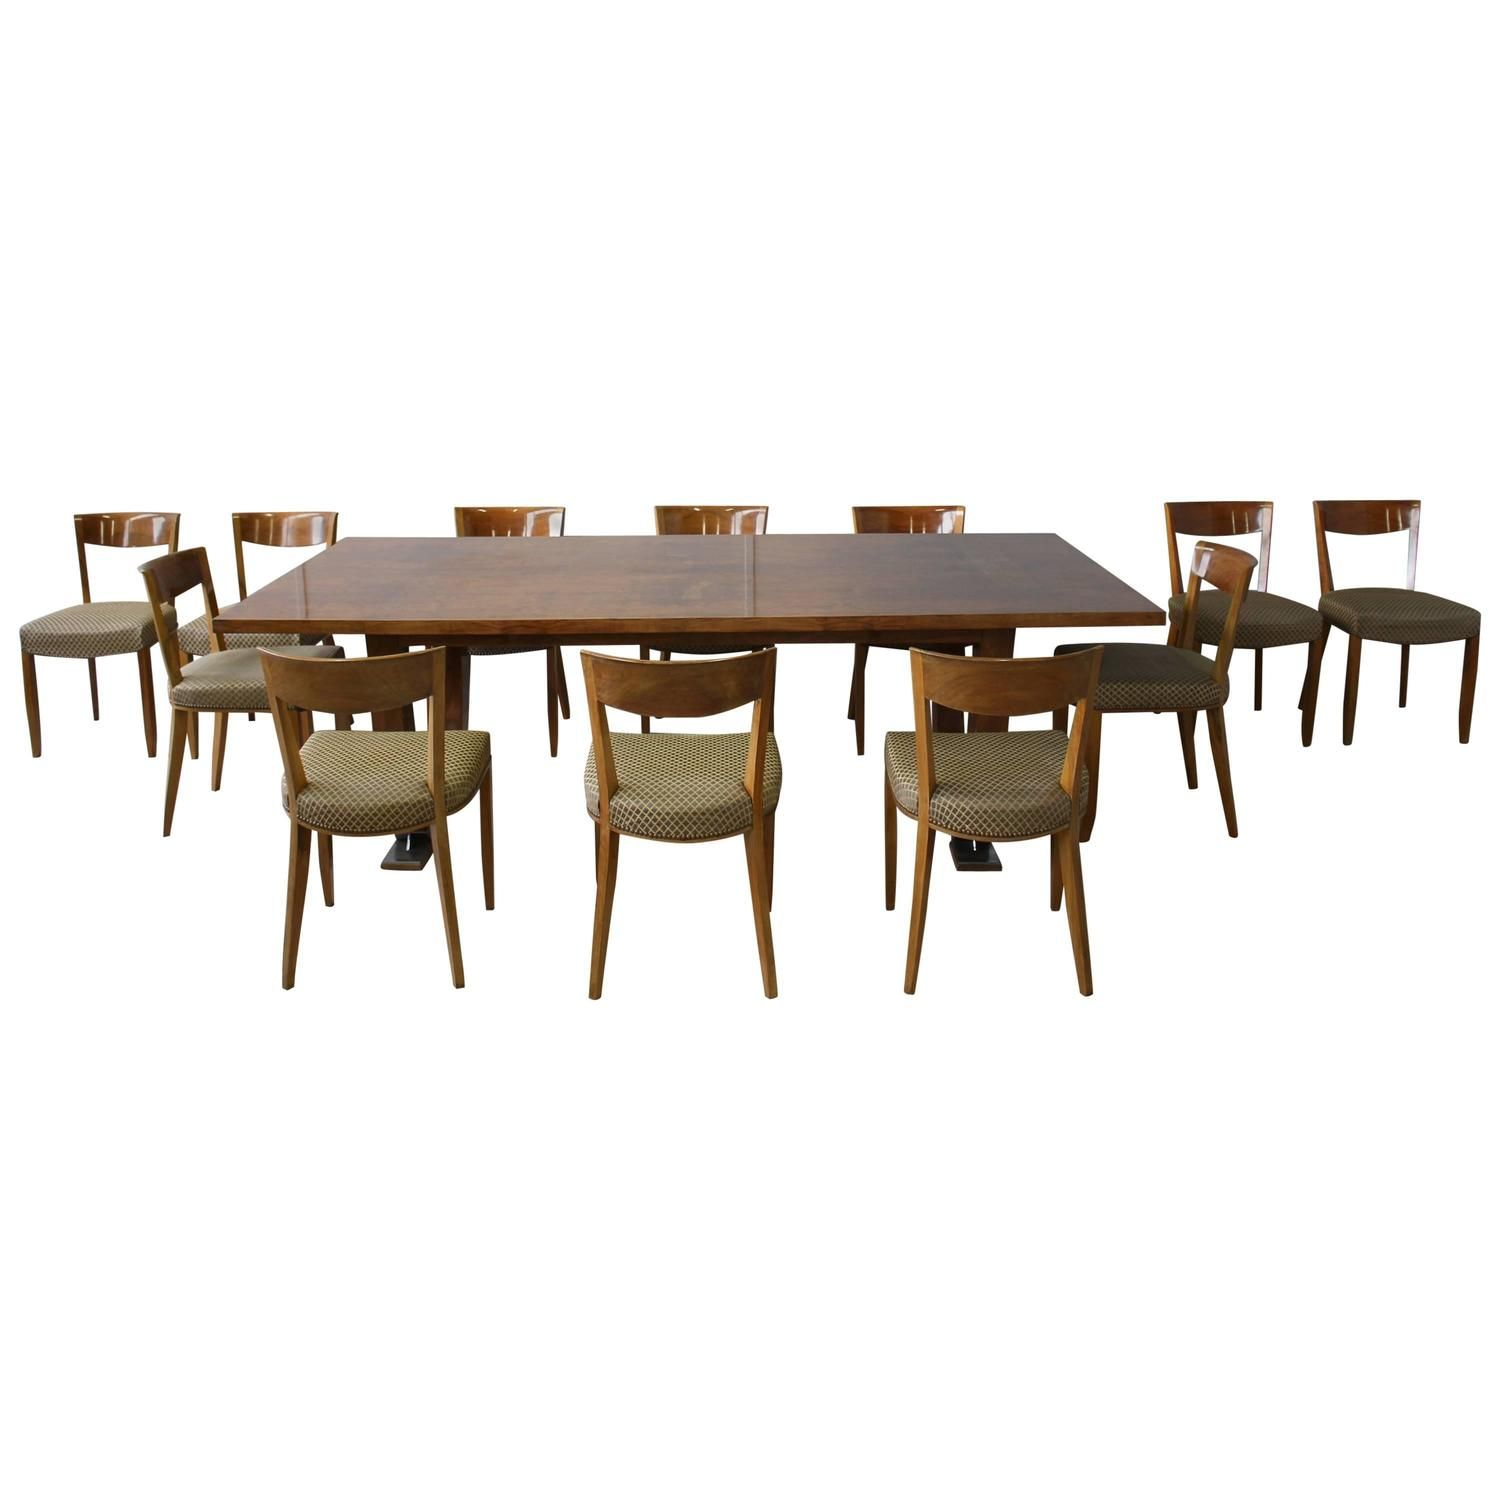 Fine French Art Deco Dining Set by Leleu, Large Table and 12 Chairs | From a unique collection of antique and modern dining room tables at https://www.1stdibs.com/furniture/tables/dining-room-tables/